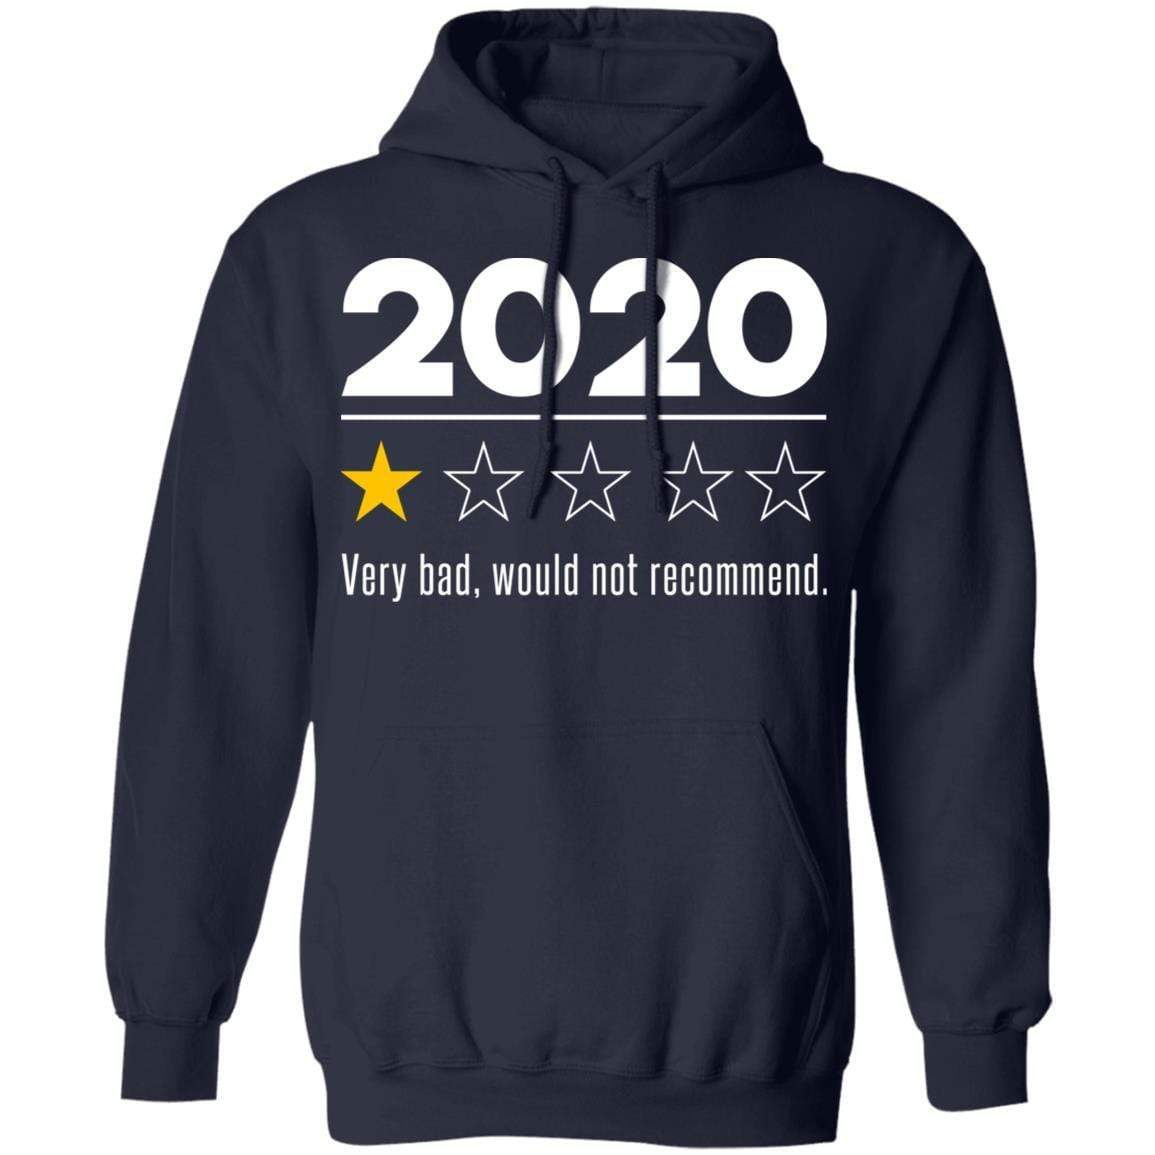 2020 This Year Very Bad Would Not Recommend T-Shirts, Hoodies 541-4742-88282840-23135 - Tee Ript